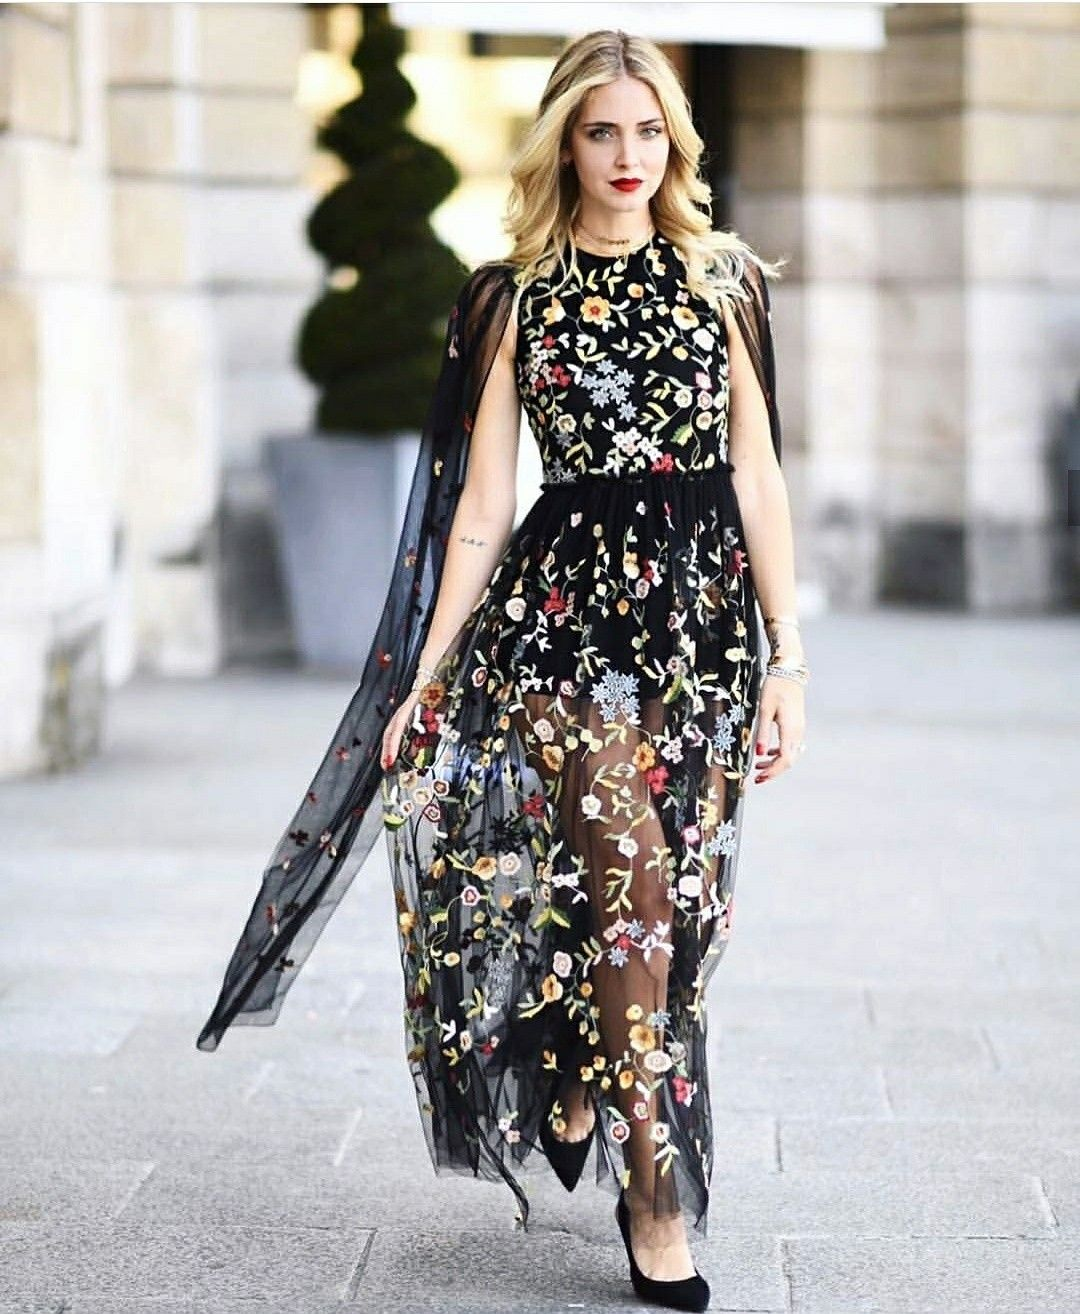 c461abd1 Instagram · Dior Dress · Chiara Ferragni, Couture Week, Haute Couture  Fashion, Fashion Dresses, Fashion Fashion,